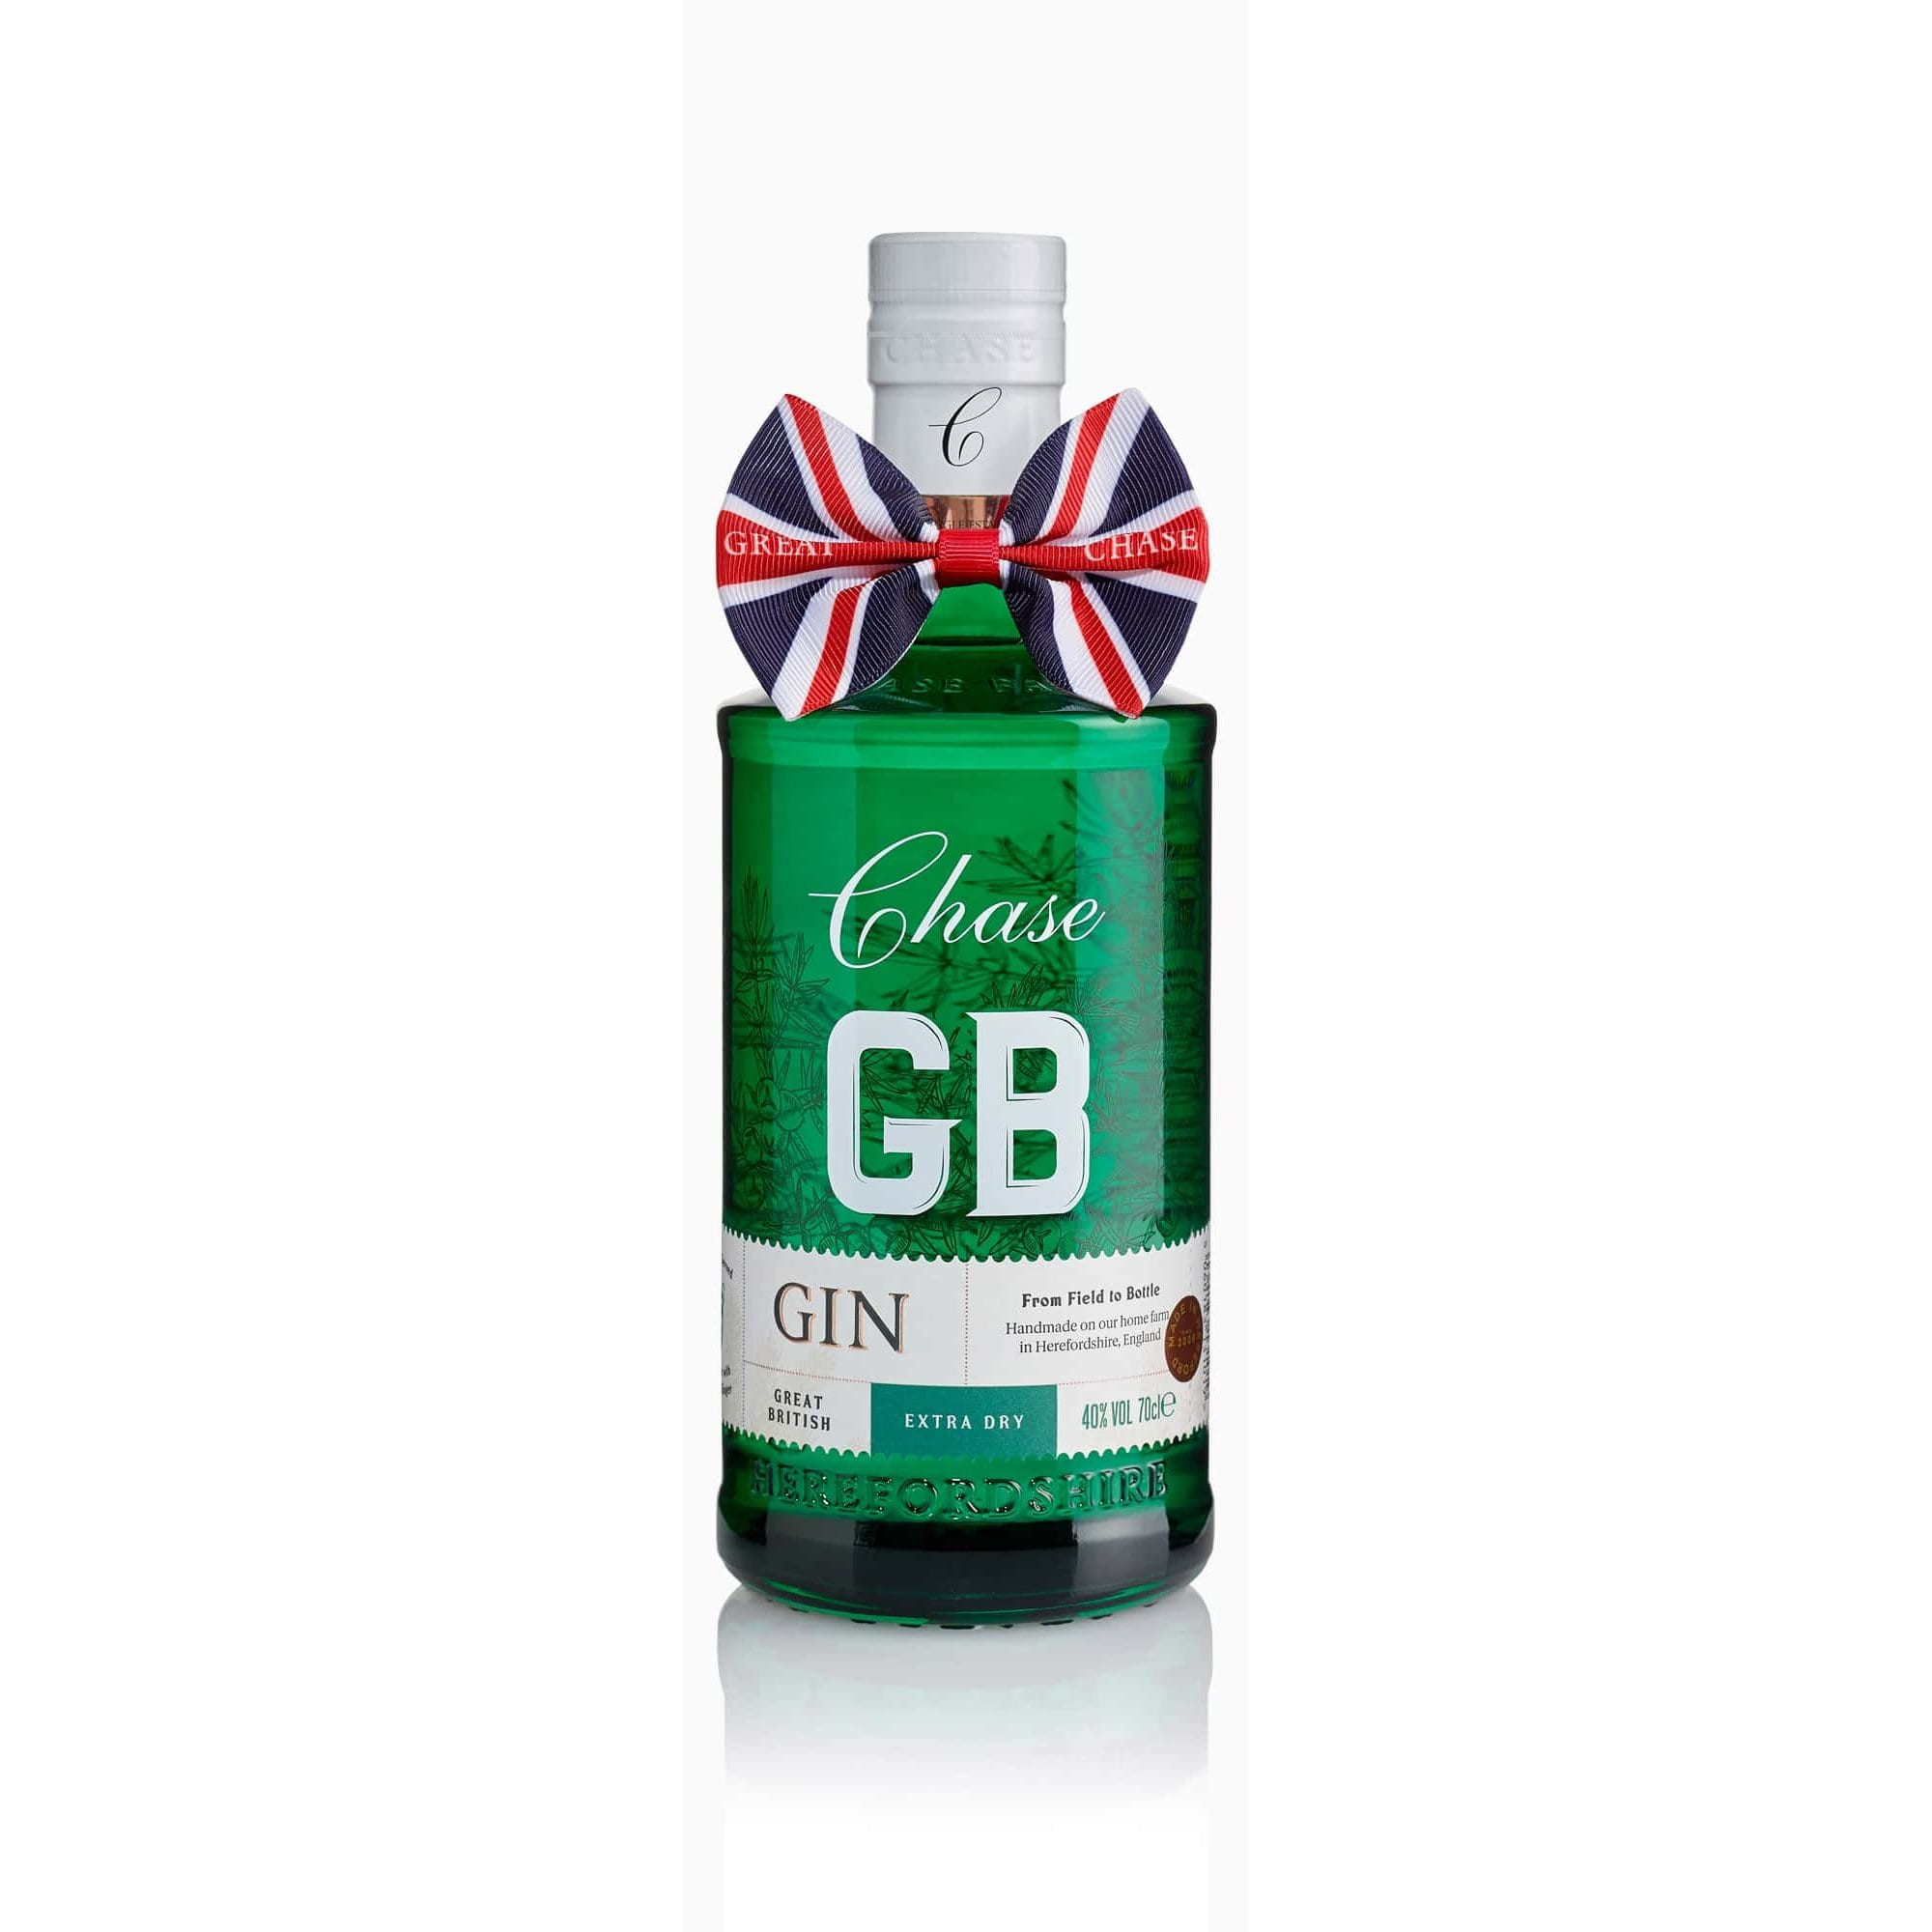 Chase GB Gin from Herefordshire